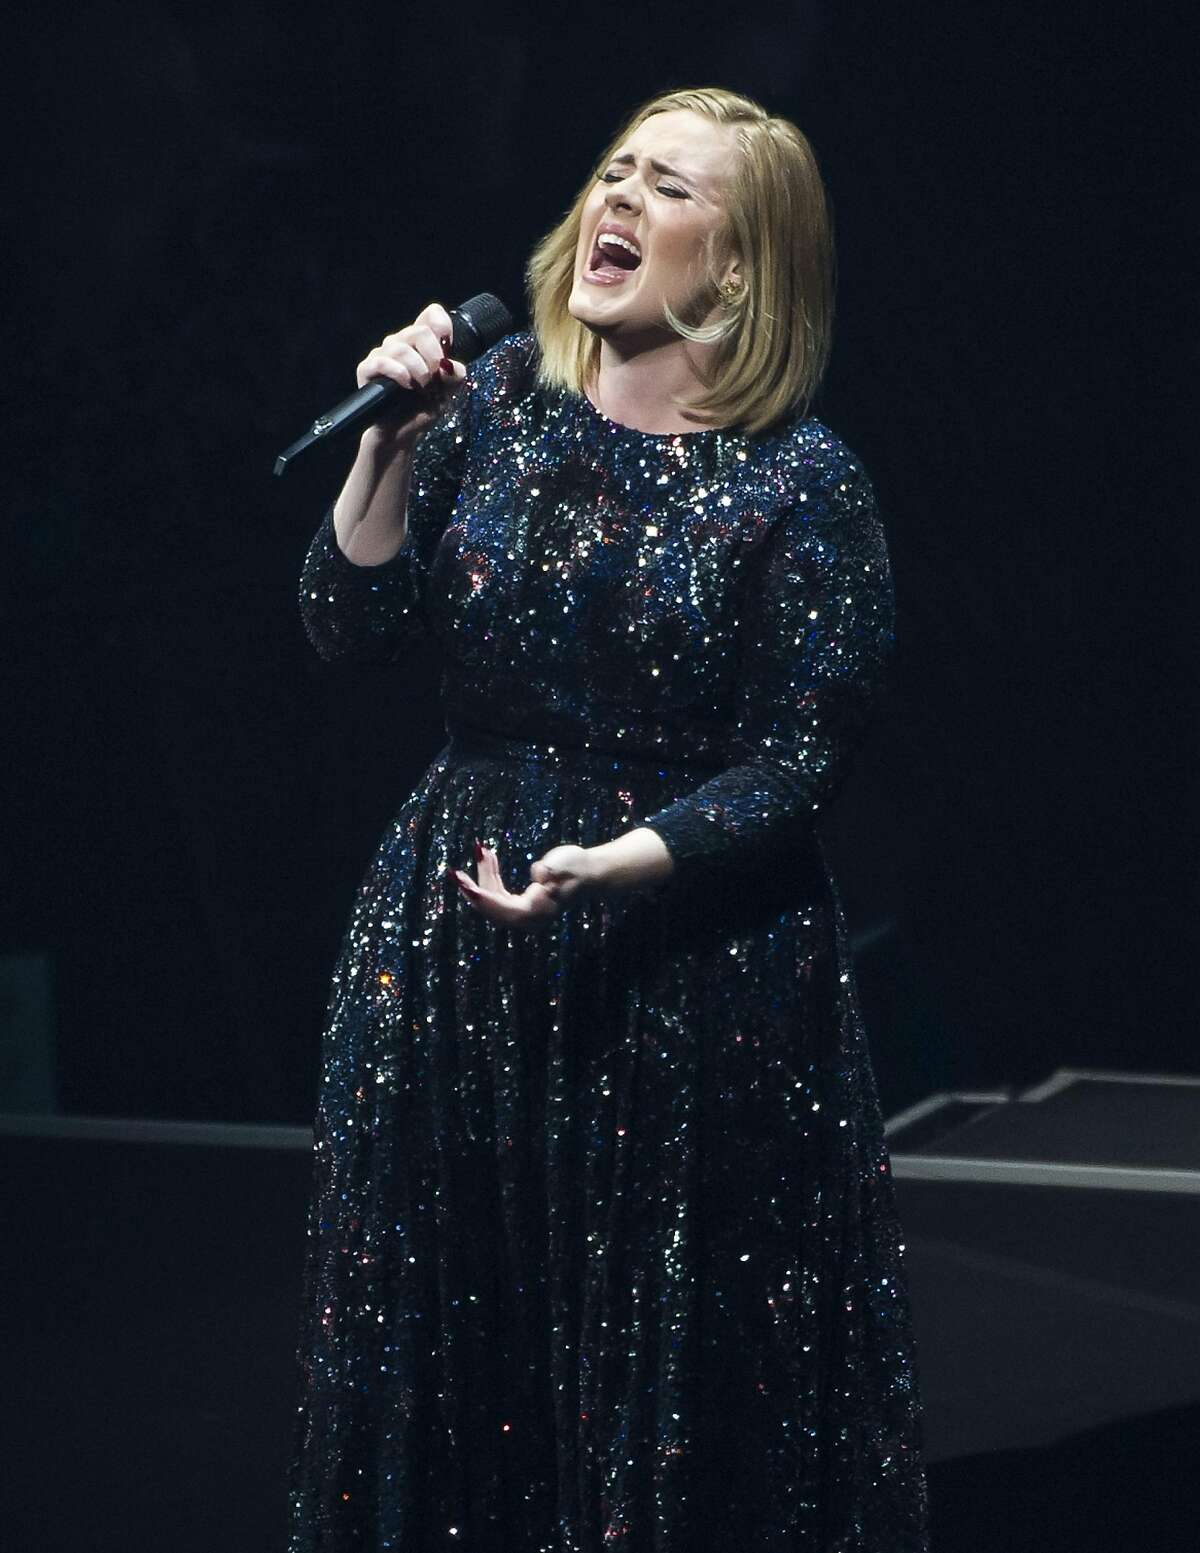 SAN JOSE, CA - JULY 30: (EXCLUSIVE COVERAGE) Adele performs on her North America tour at SAP Center on July 30, 2016 in San Jose, California. (Photo by Steve Jennings/Getty Images for BT PR)